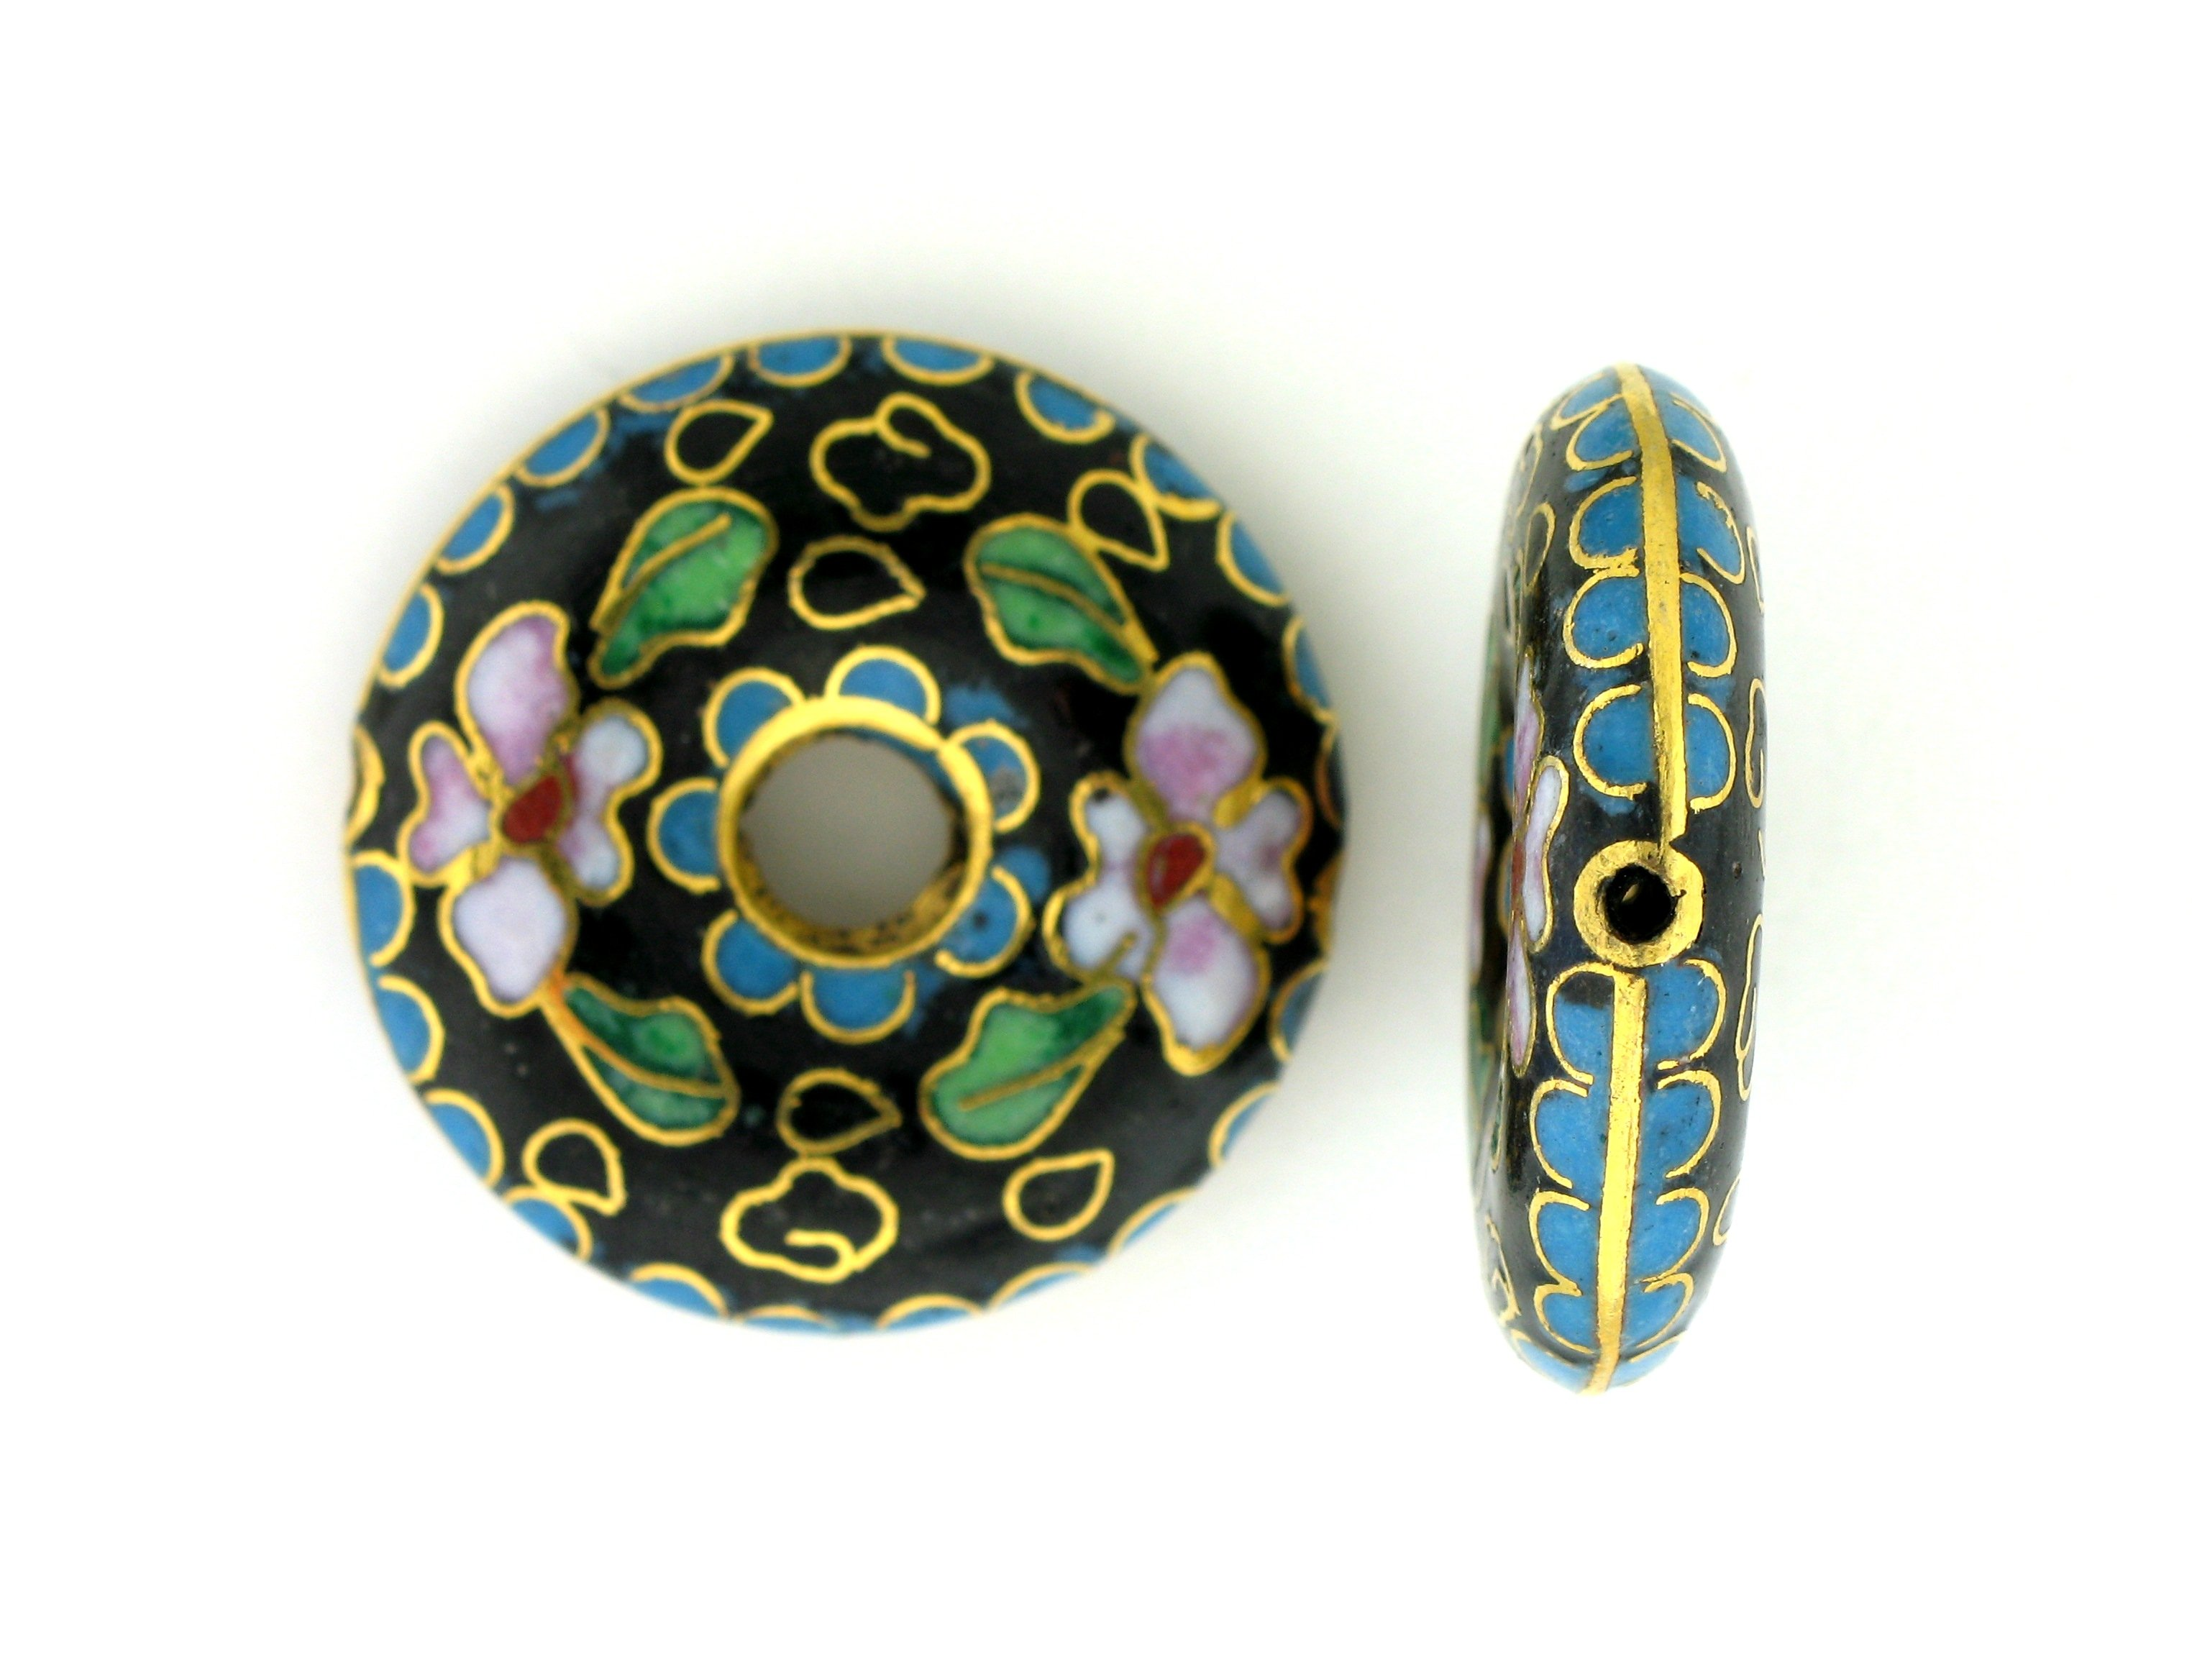 Cloisonne beads 101: Everything you need to know is here